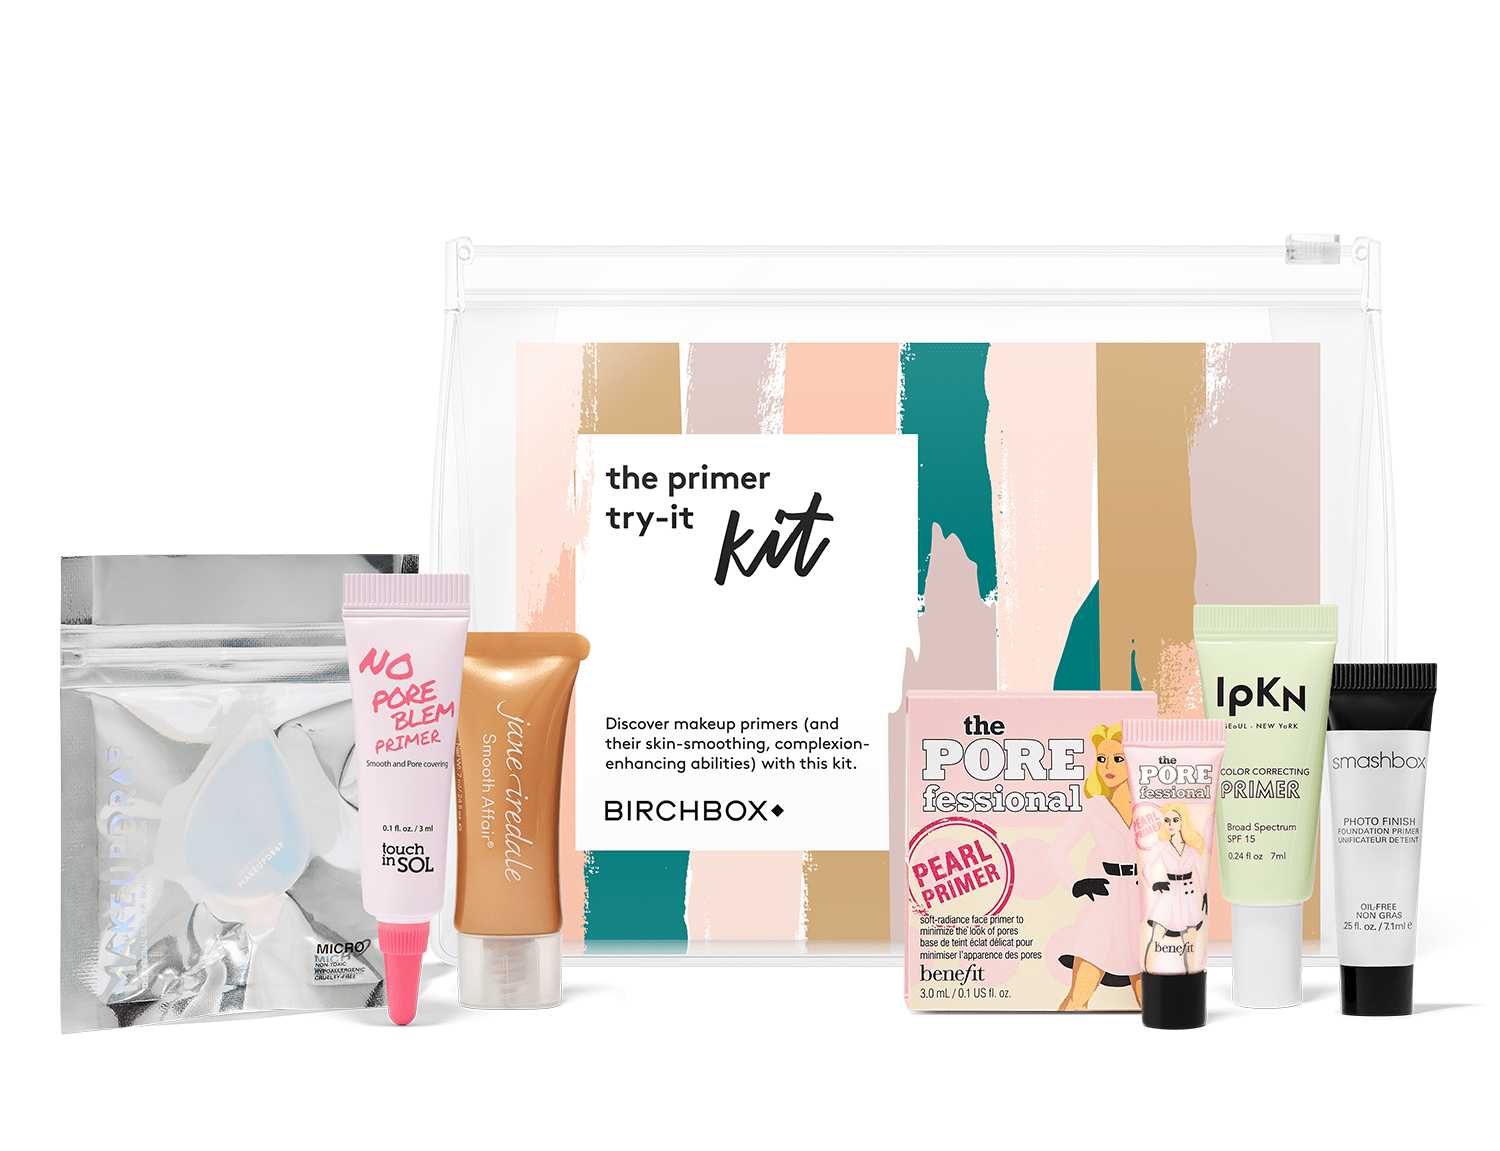 New Birchbox Kit + Free Gift Coupons – The Primer Try-It Kit!